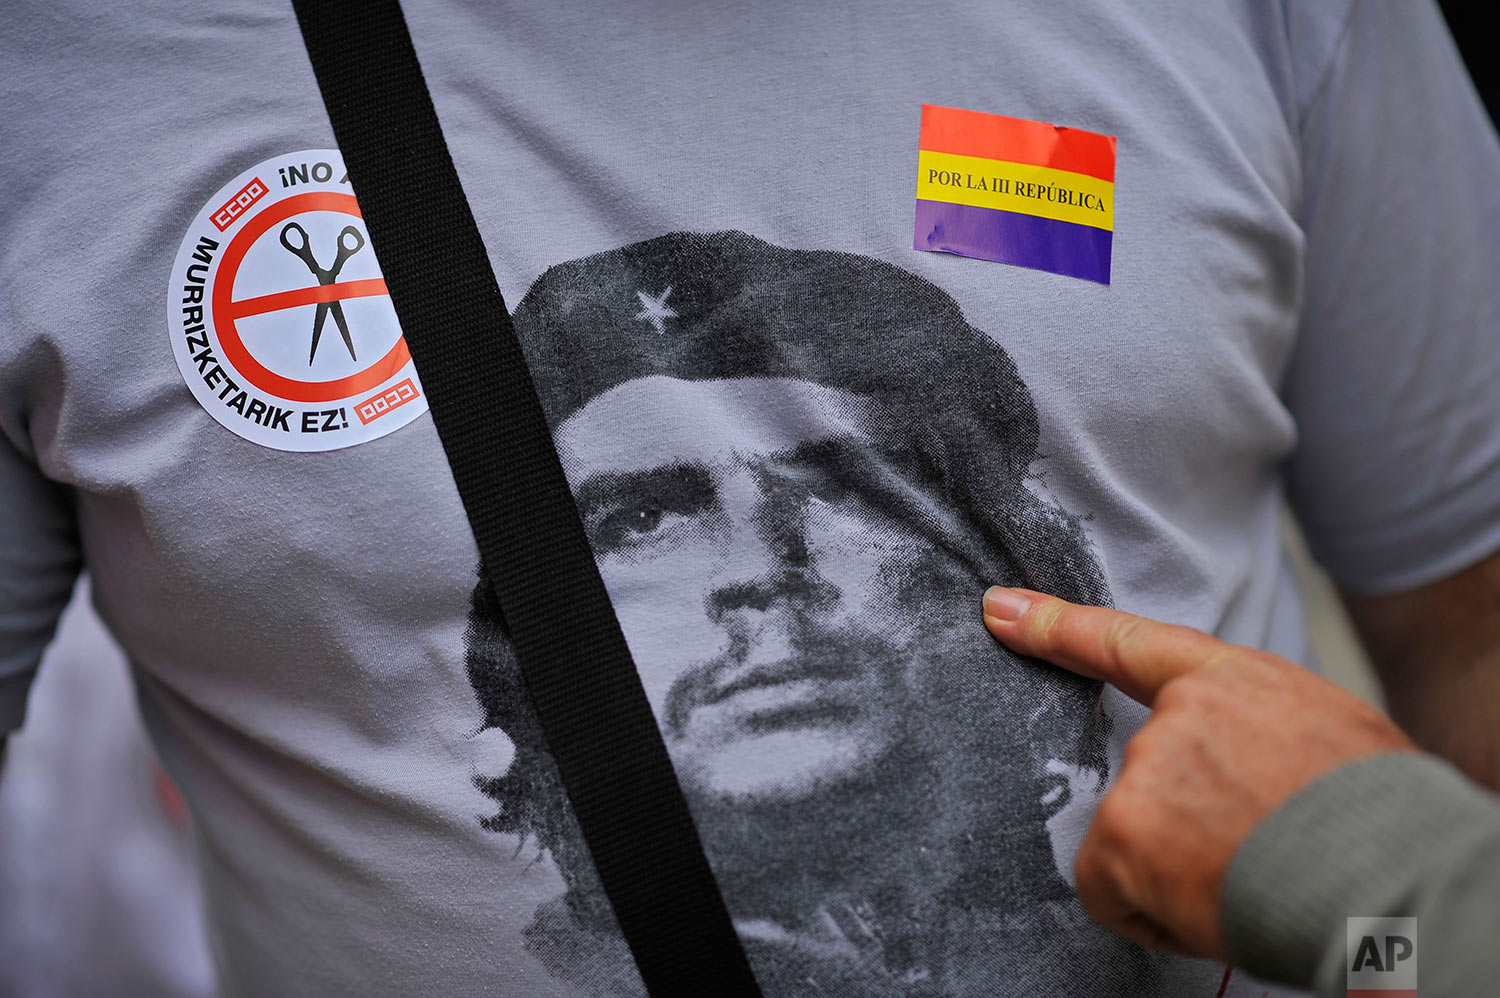 A citizen points to a portrait of ''Che Guevara'' on a shirt of one demonstrator between two stickers, at a protest against the Spanish government's cutback plans, and for a new Spanish Republic, right, in Pamplona, northern Spain, Sunday, Oct. 7, 2012. (AP Photo/Alvaro Barrientos)